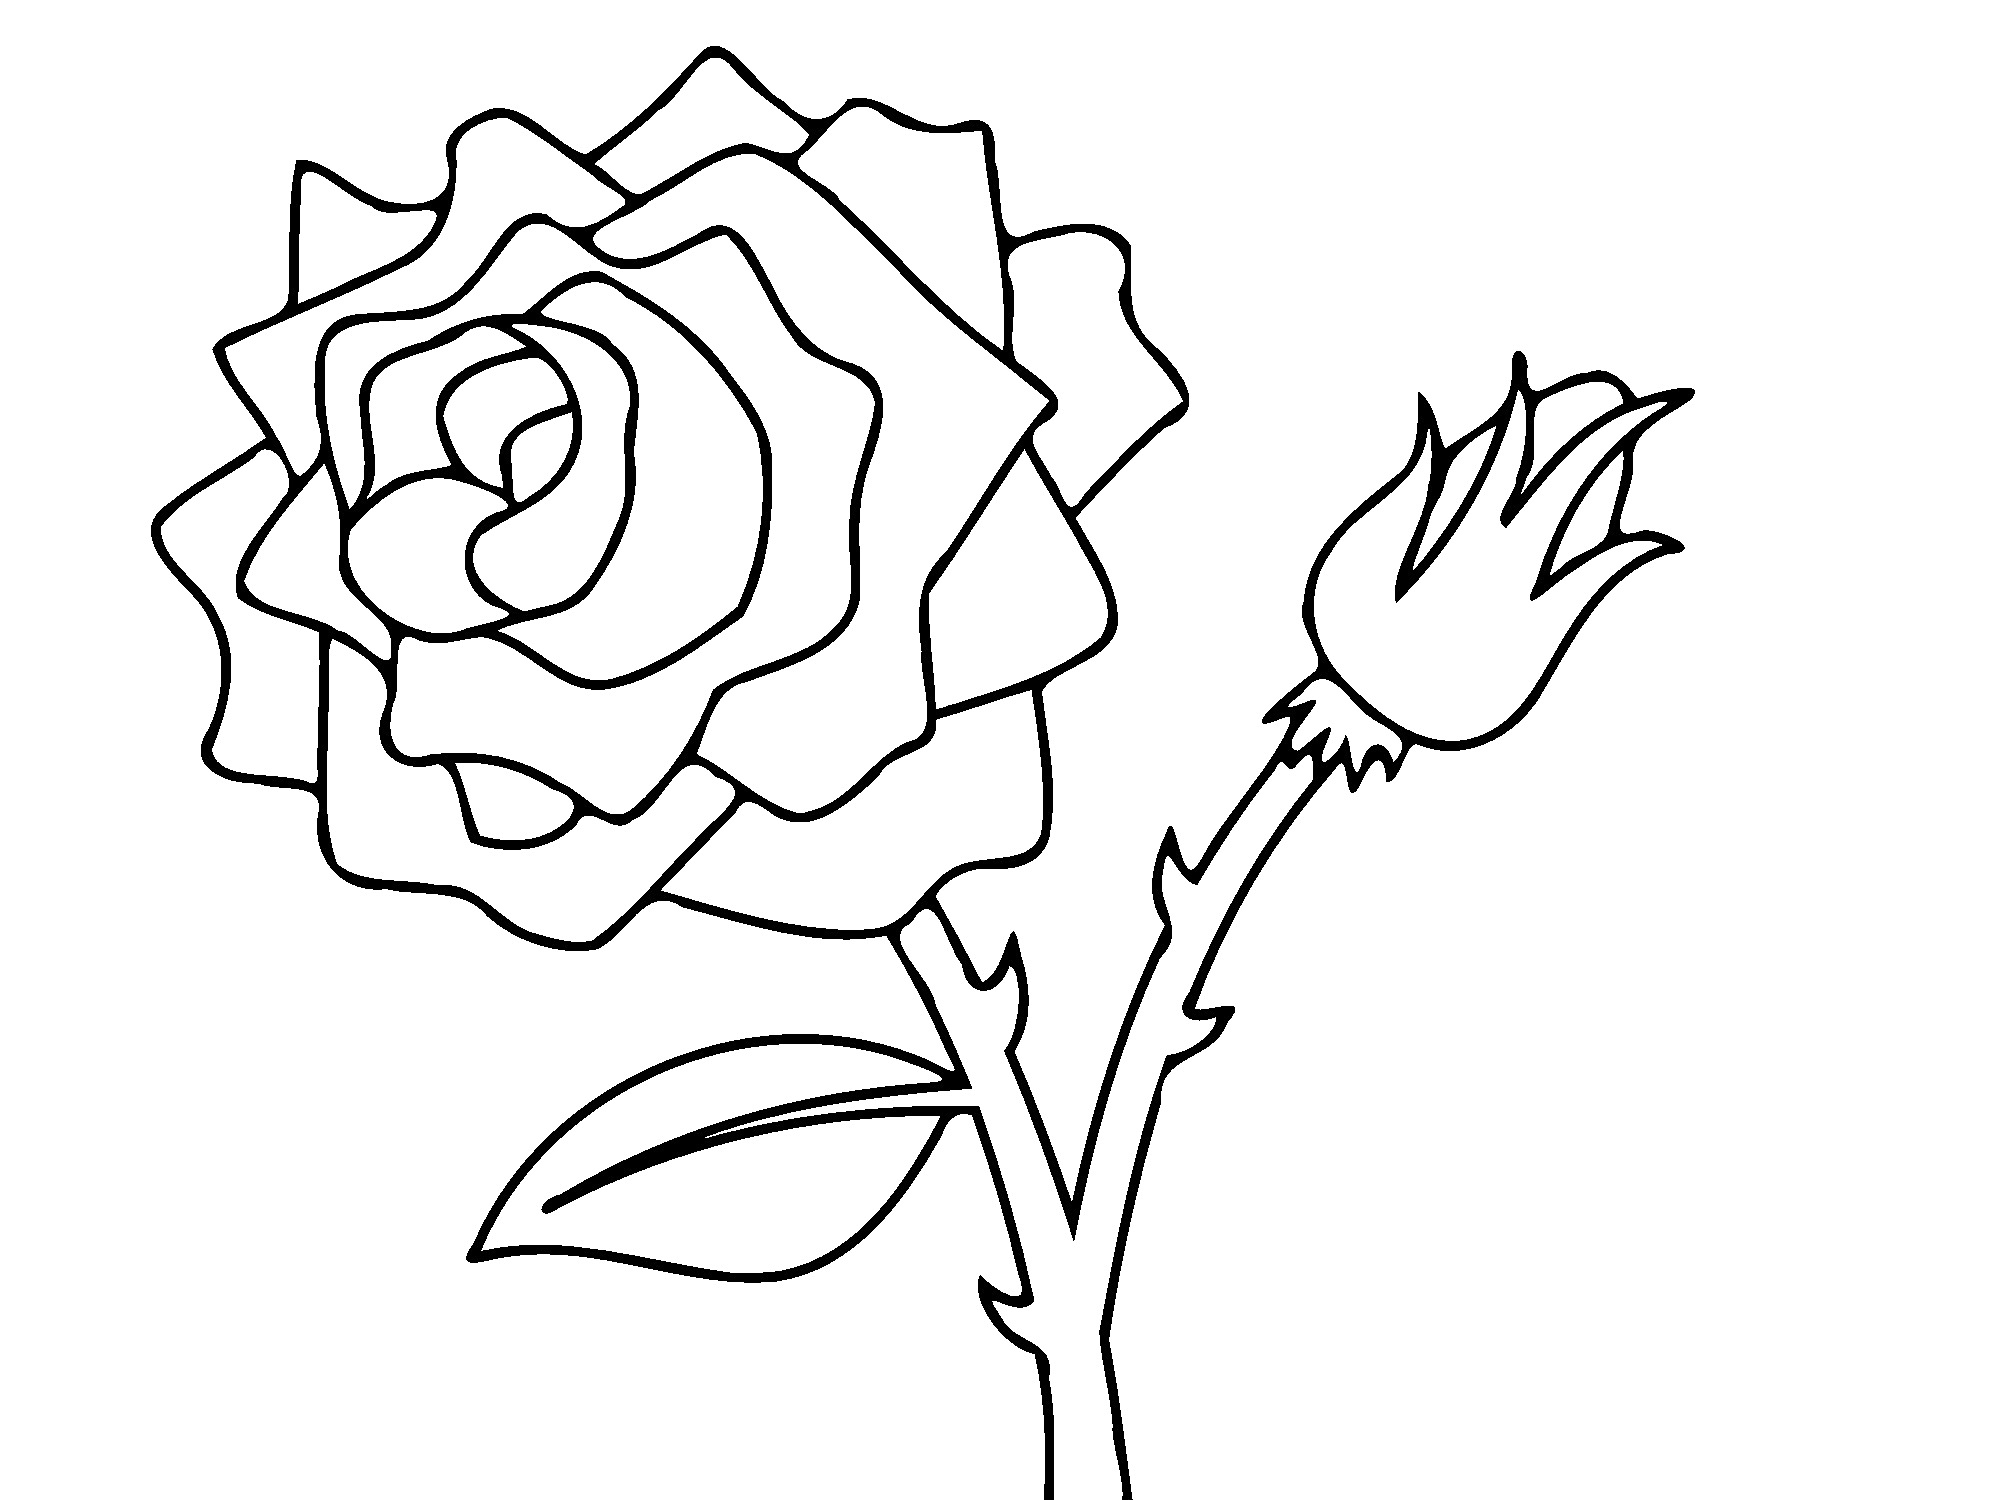 2000x1500 Rose Flower Drawings For Kids How To Draw Roses Stepstep